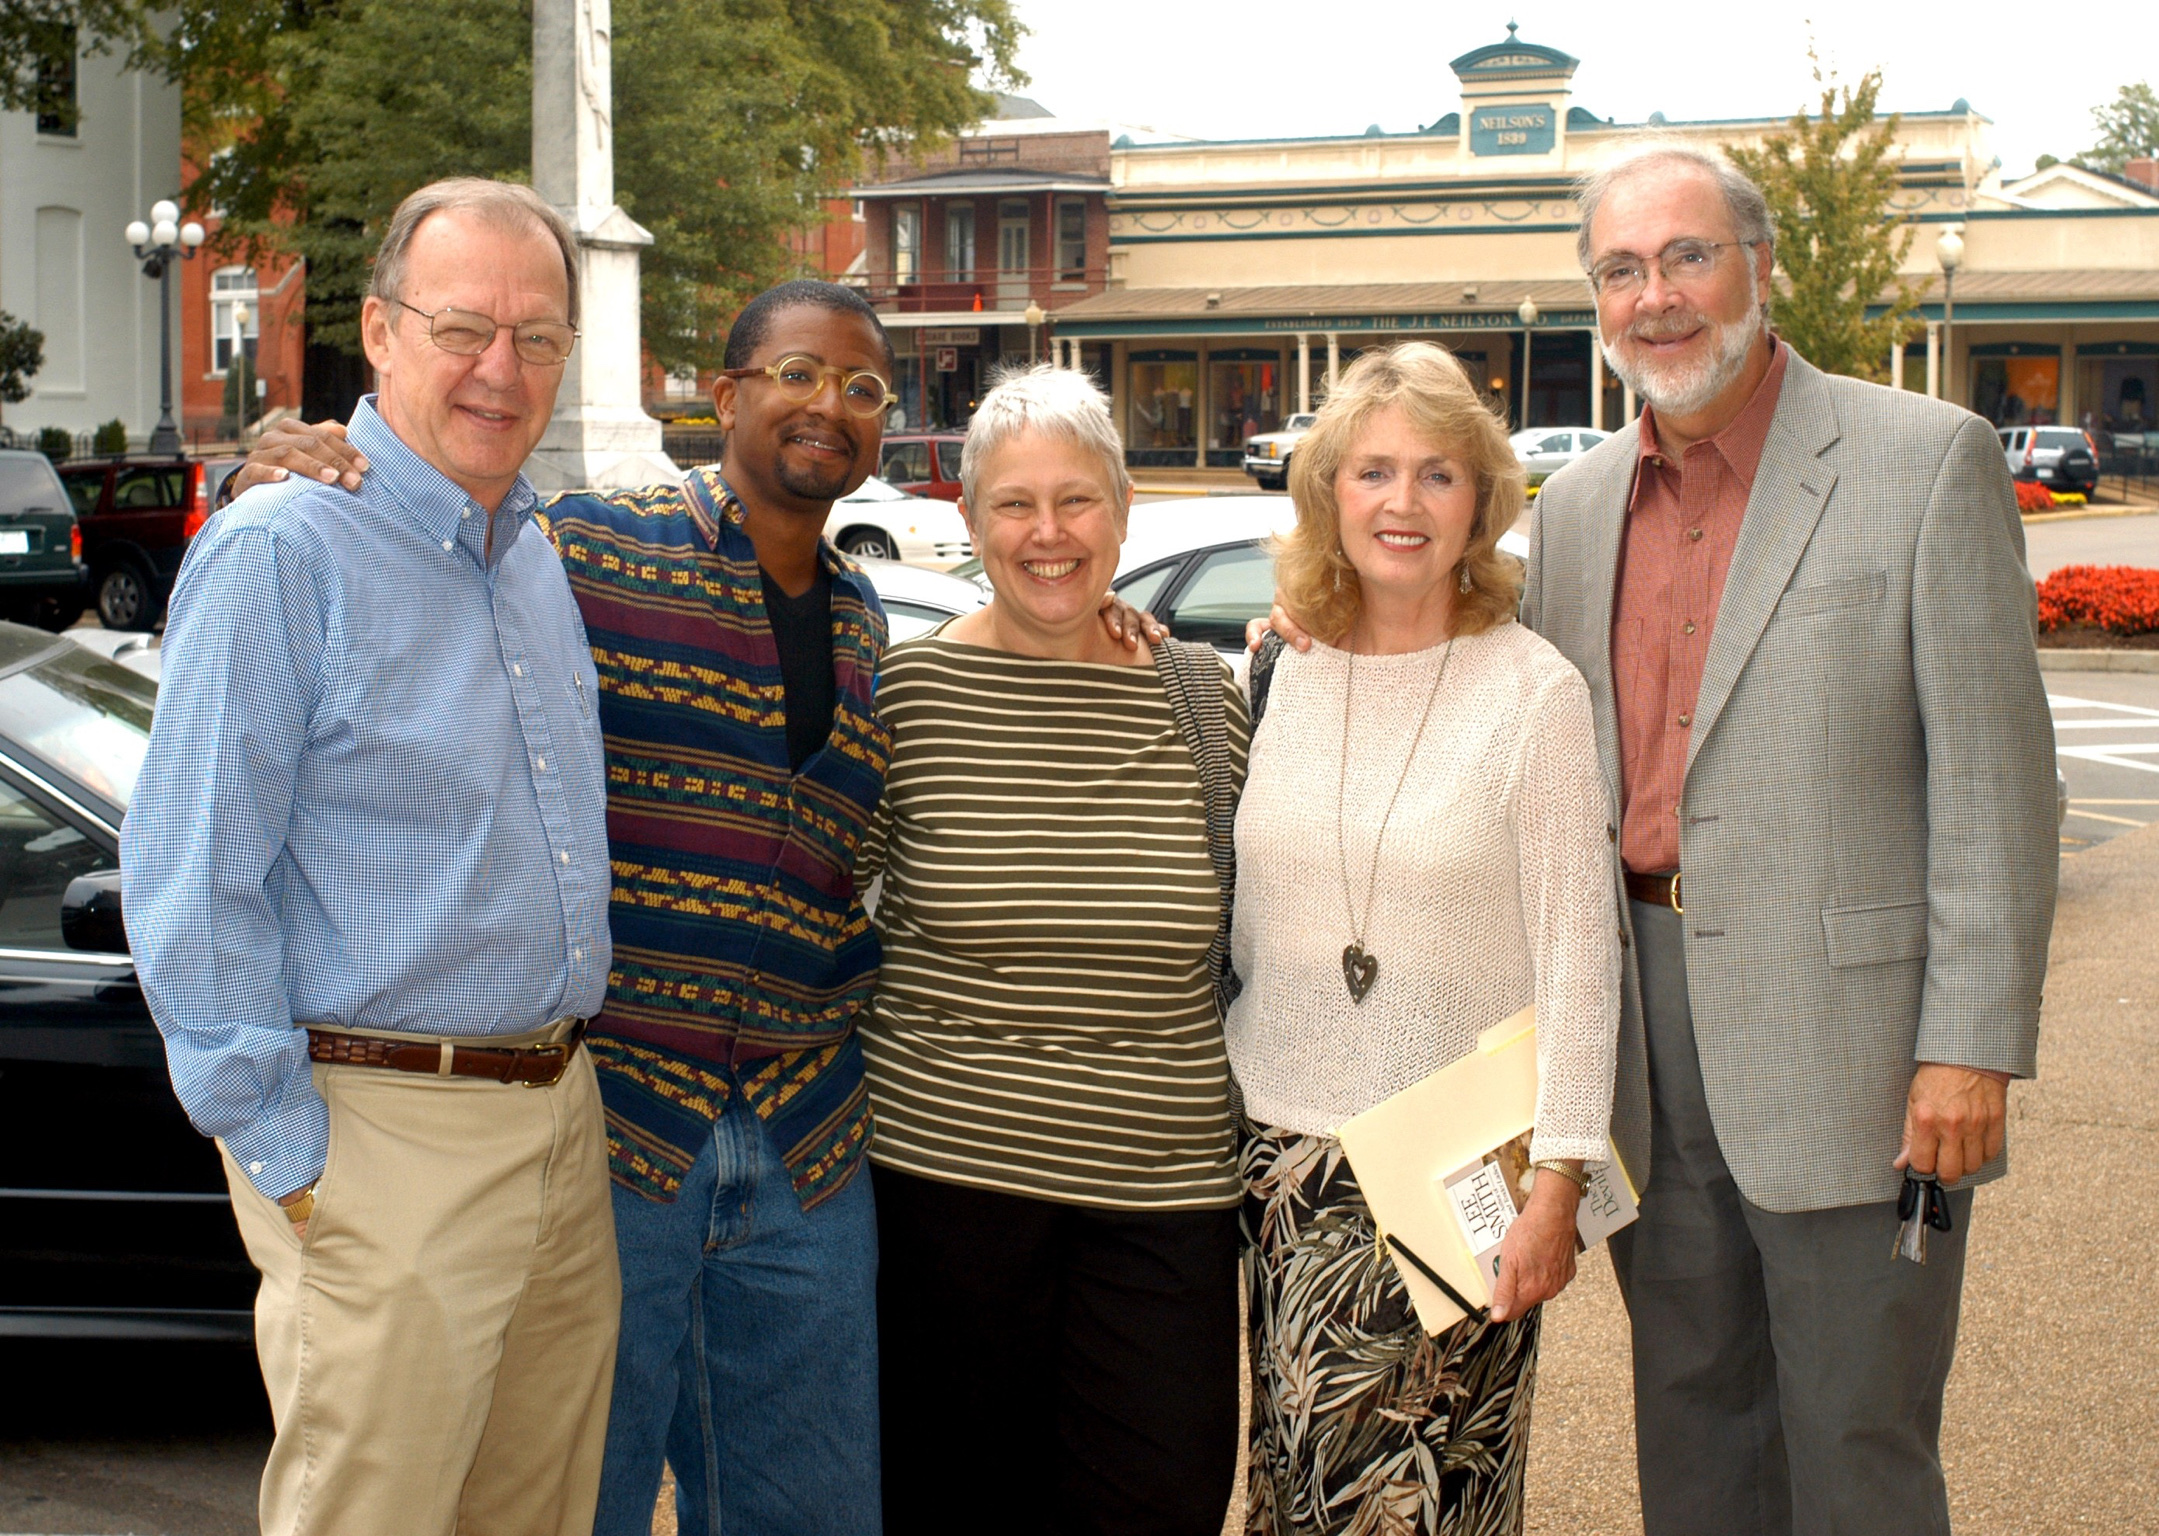 John egerton at the sfa's 2003 fall symposium in oxford, Mississippi, with the writers Lolis Eric Elie,  Ronni Lundy, Lee Smith, and Hal Crowther.